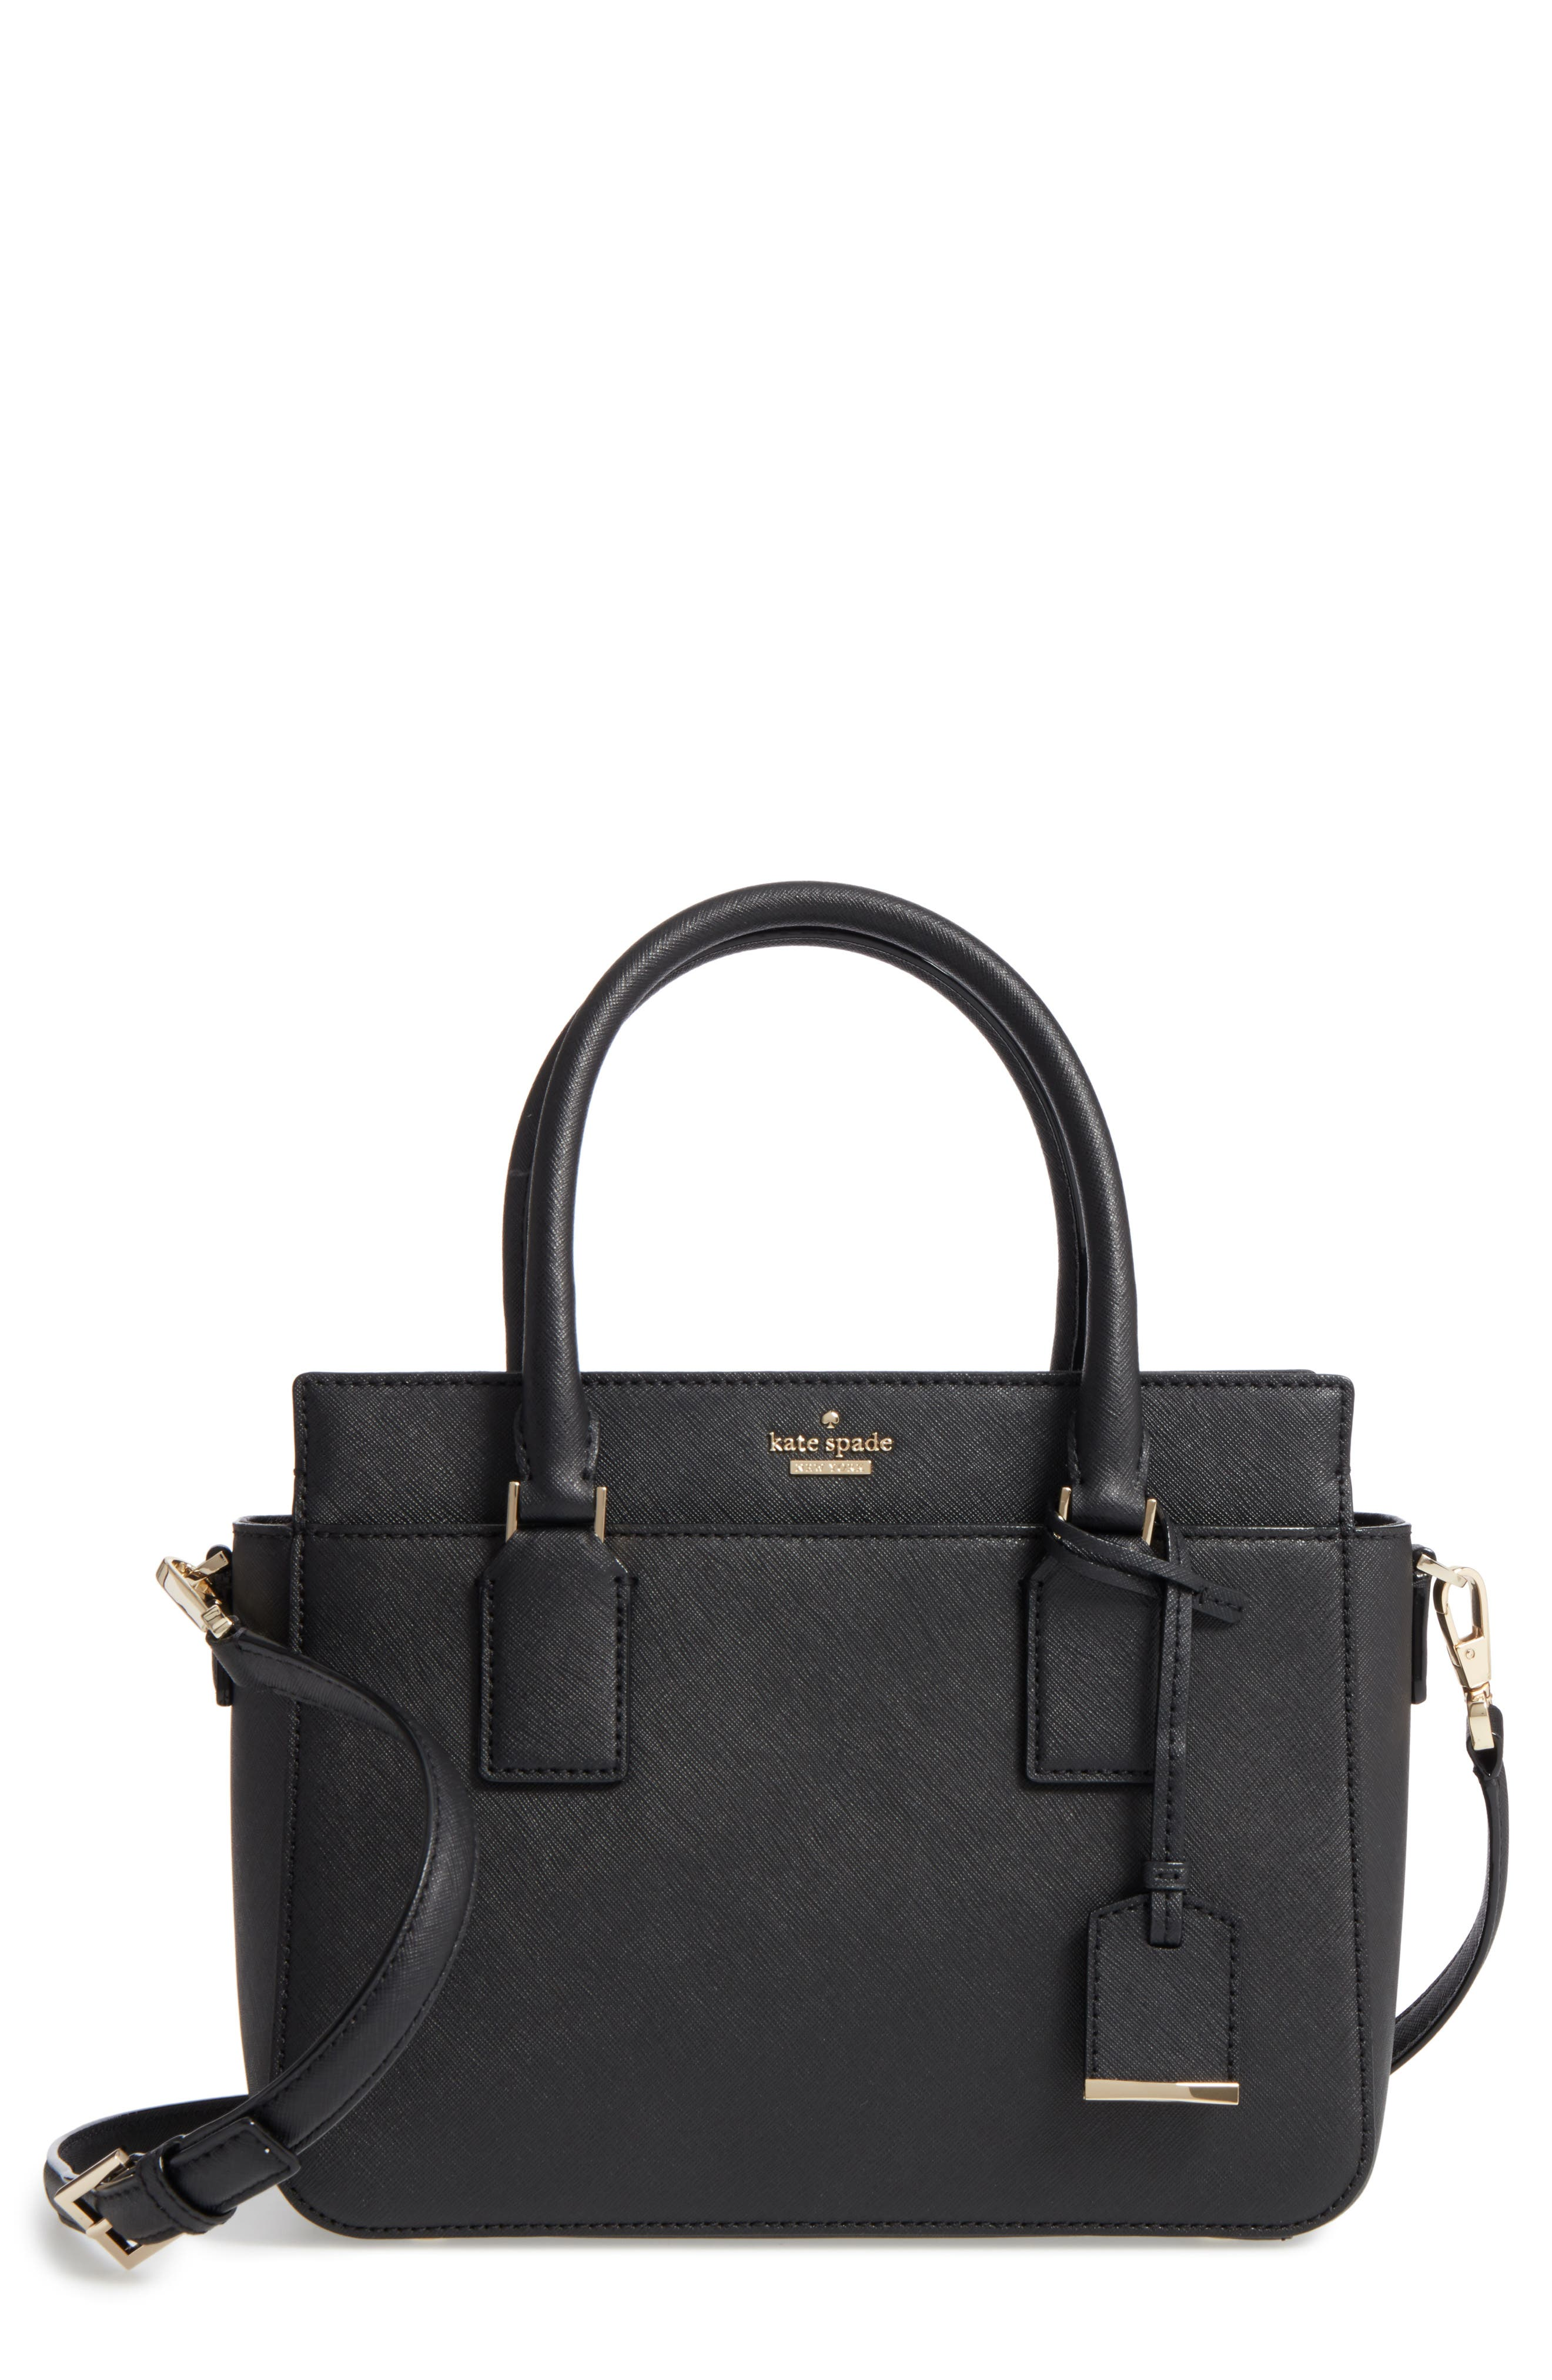 cameron street - small sally leather satchel,                             Main thumbnail 1, color,                             001